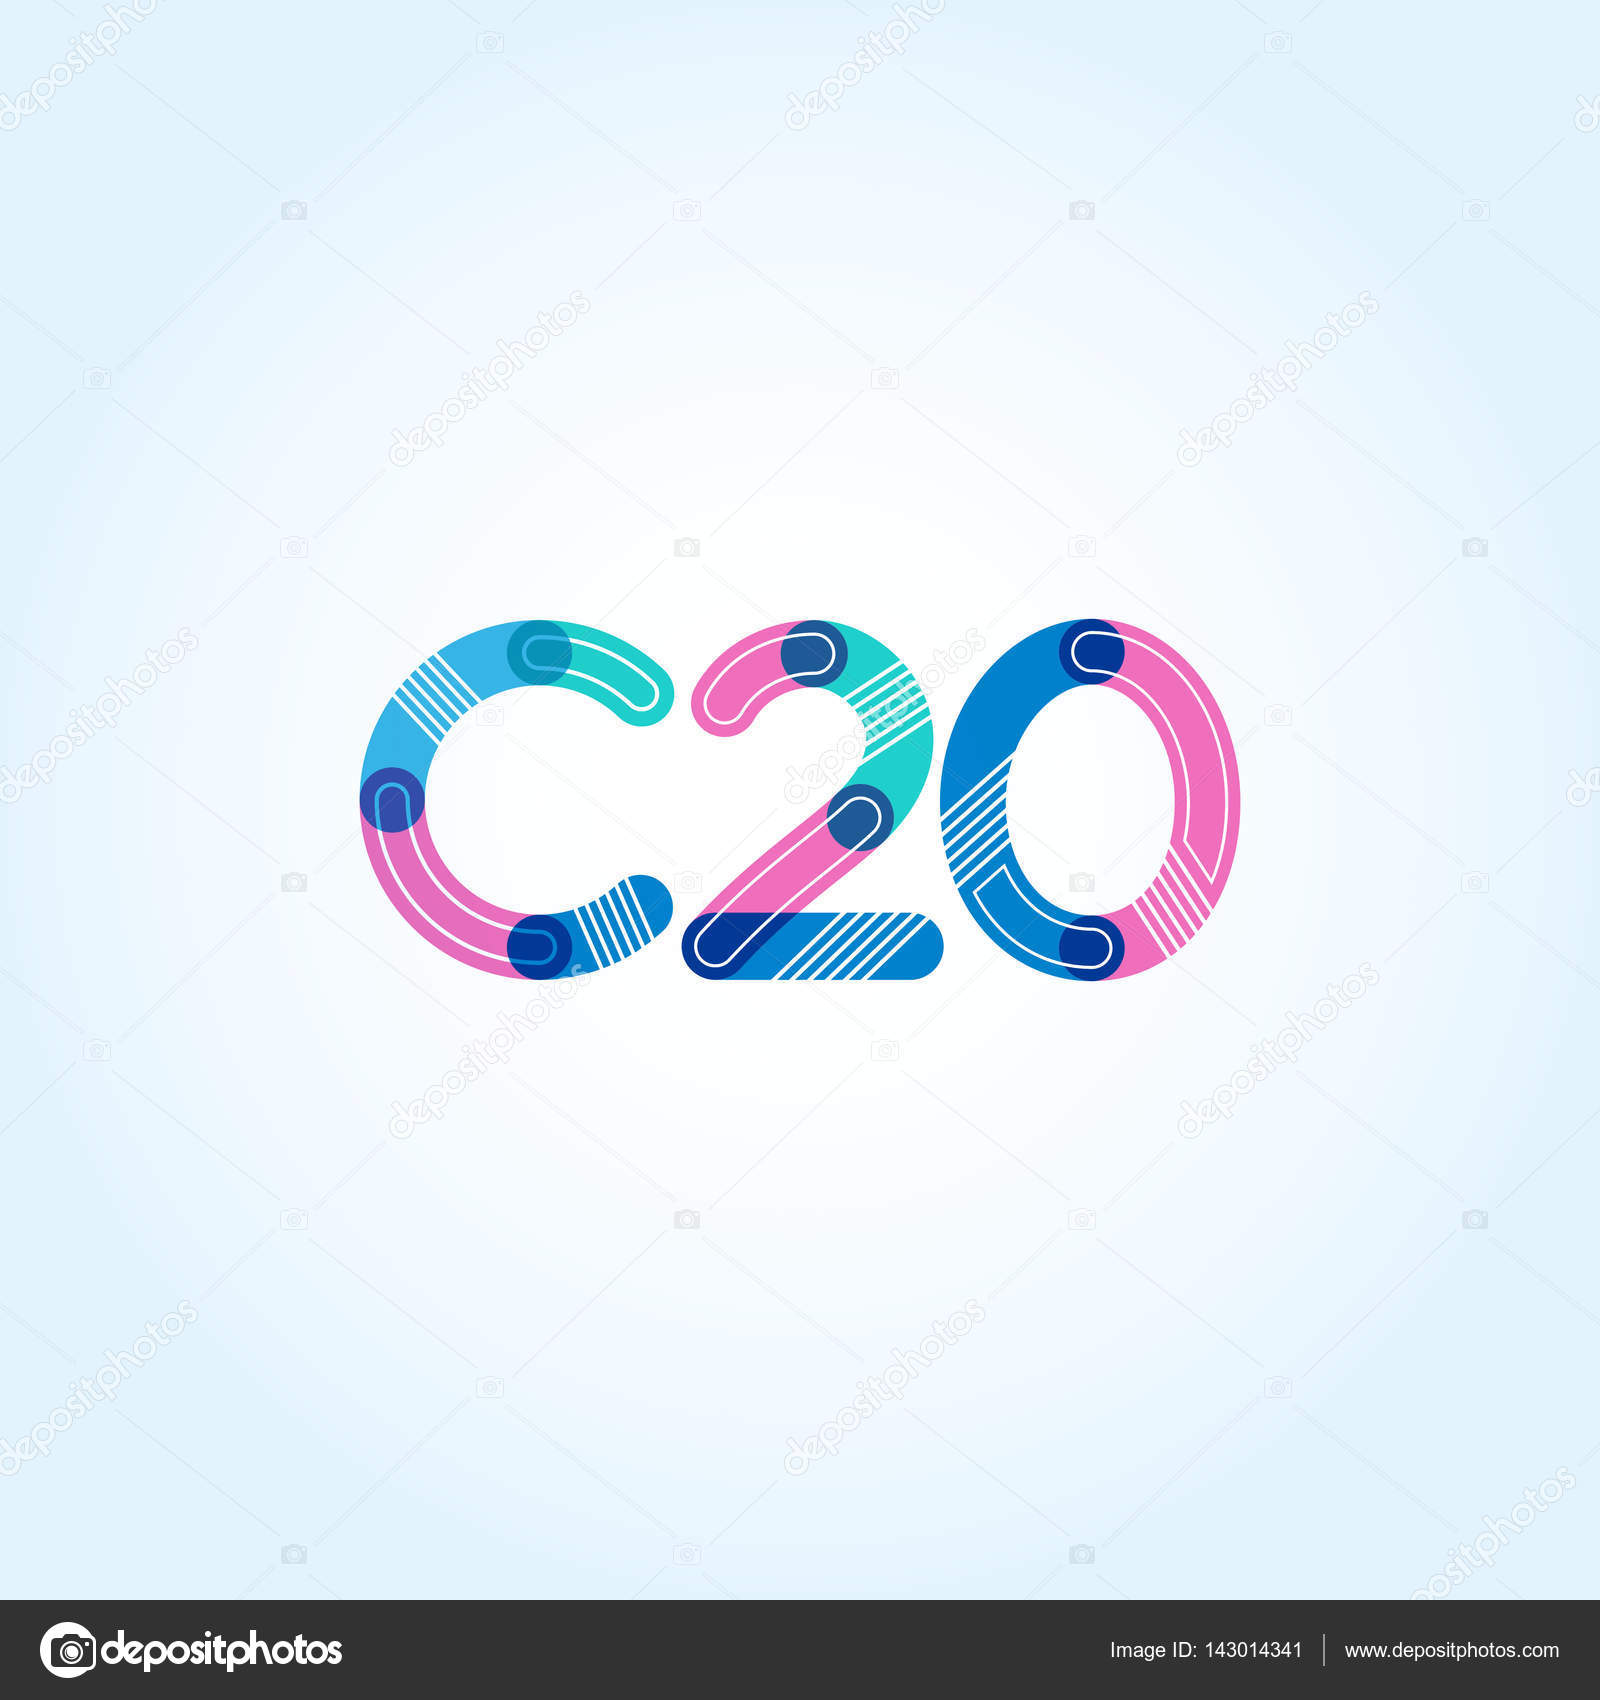 C20 letter and number logo icon — Stock Vector © brainbistro #143014341